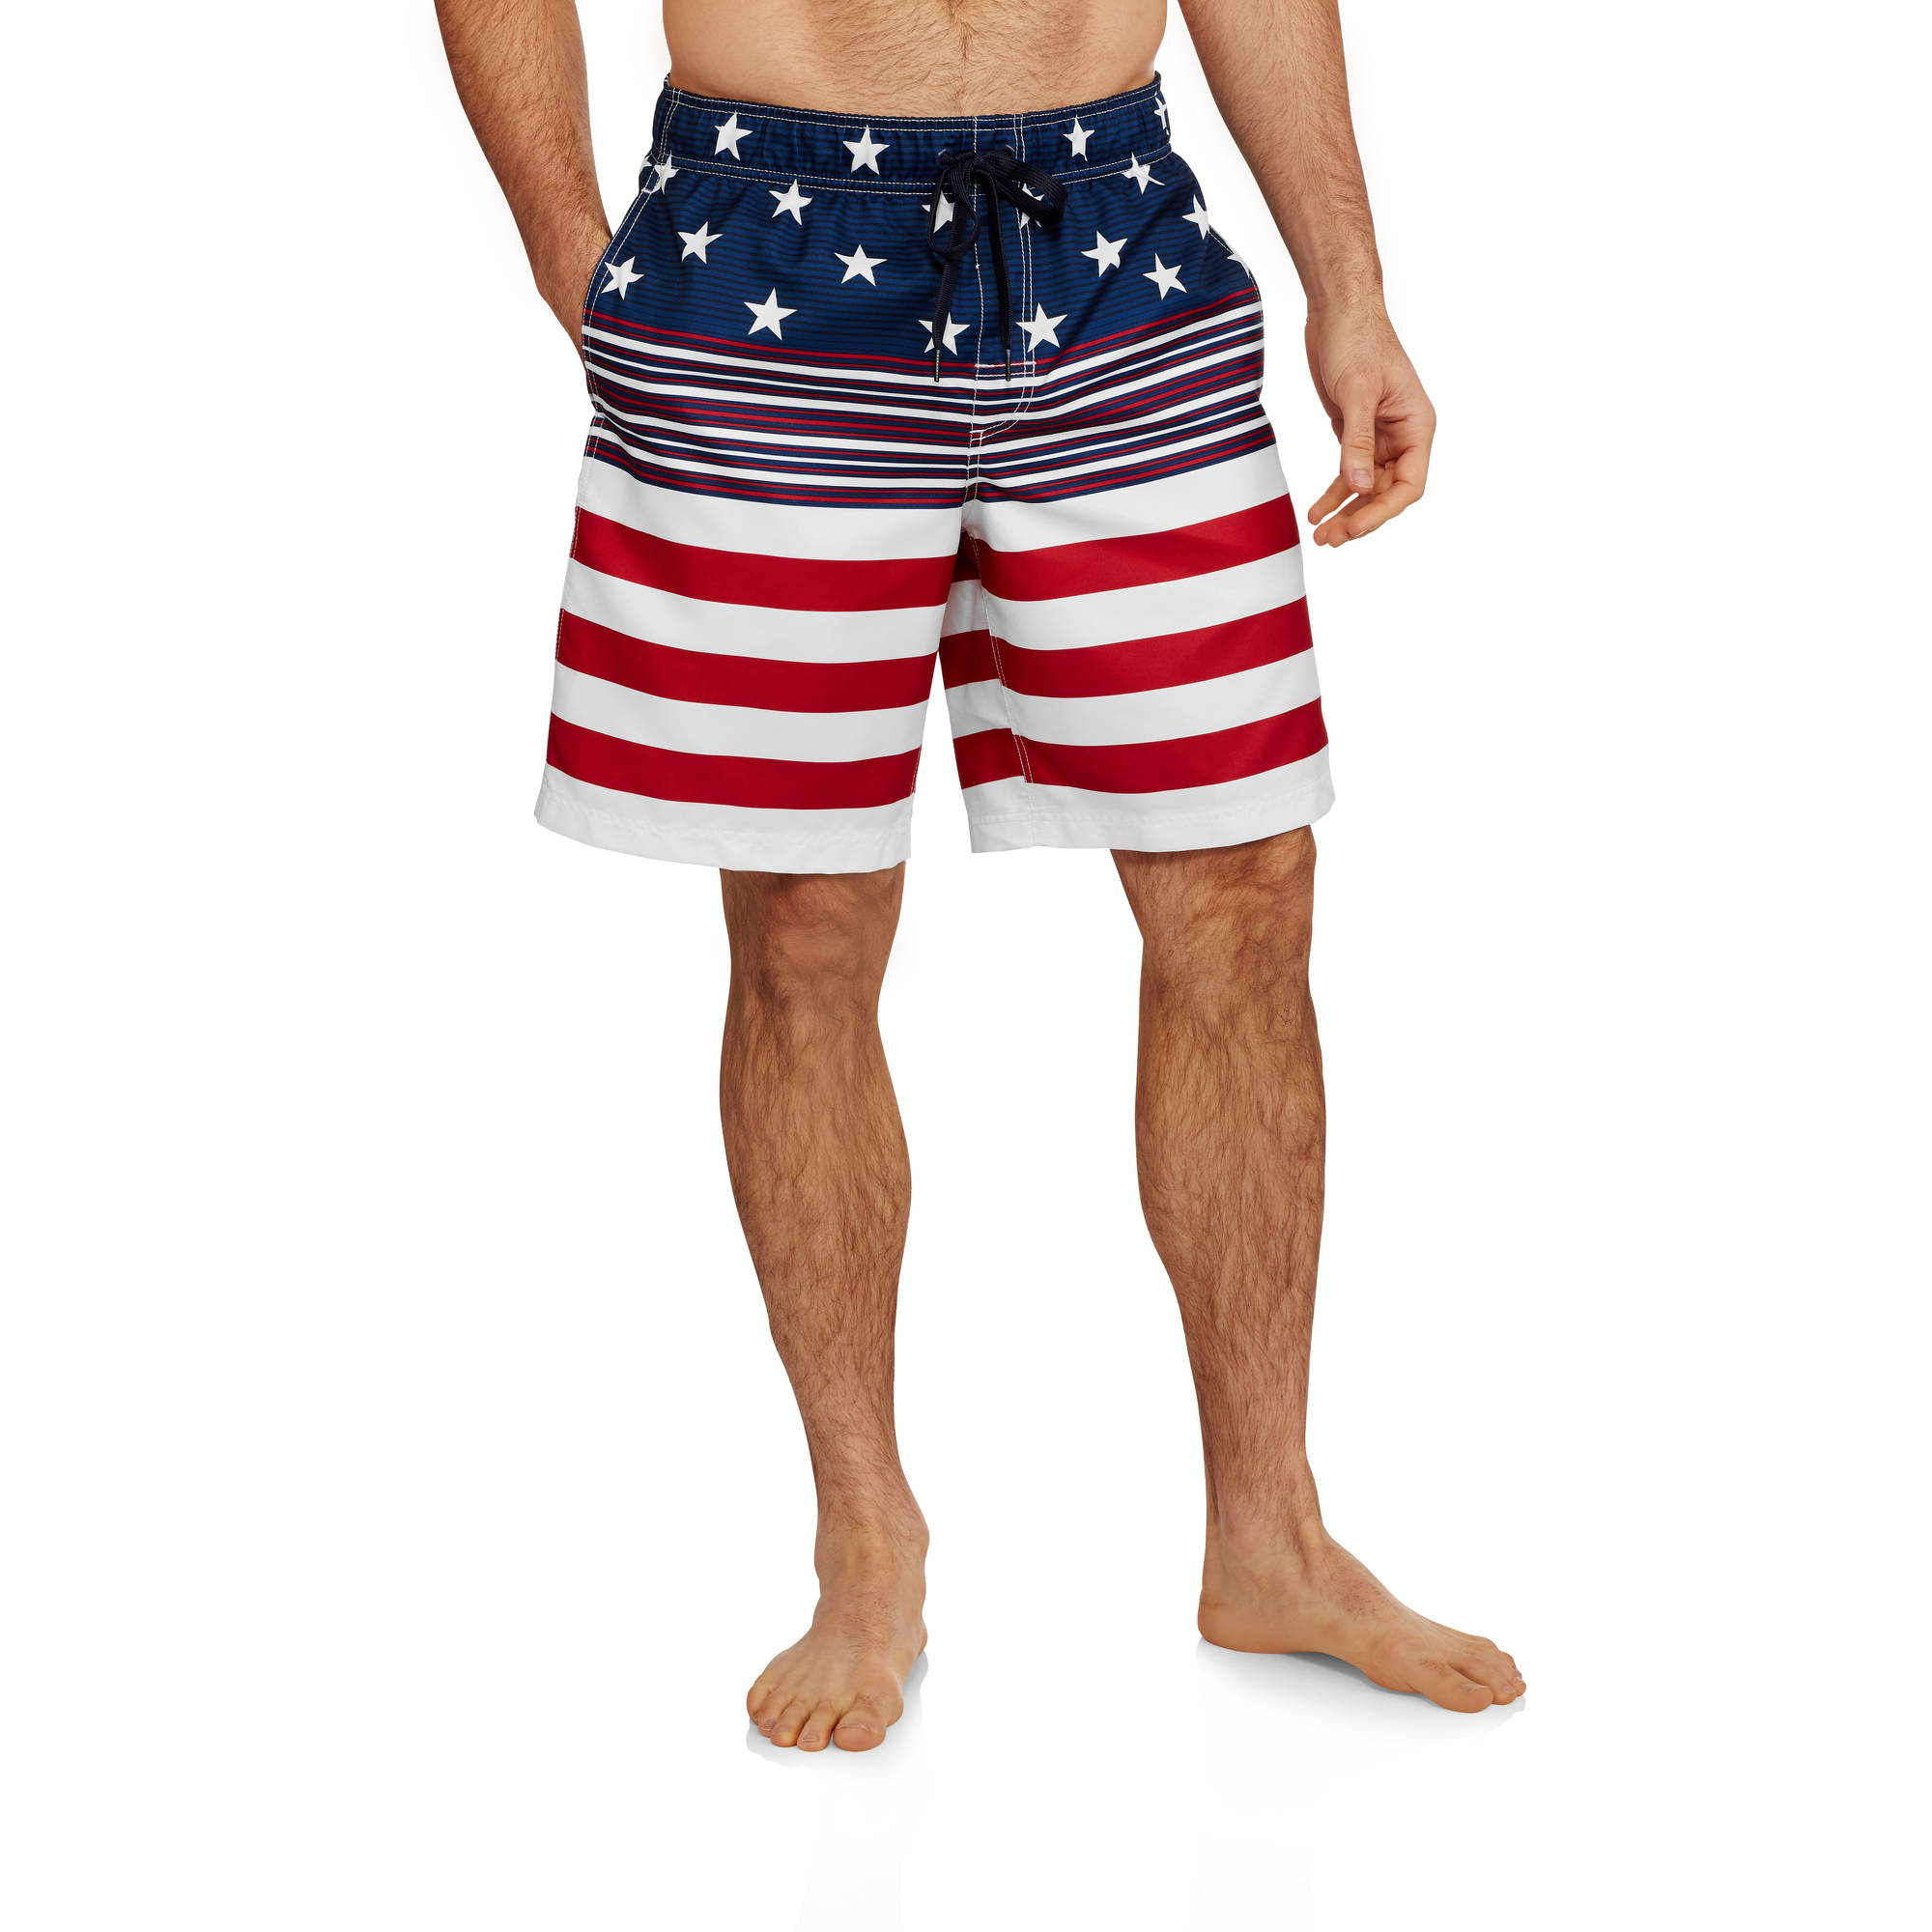 Big Men's Stars and Stripes Printed Swim Trunk